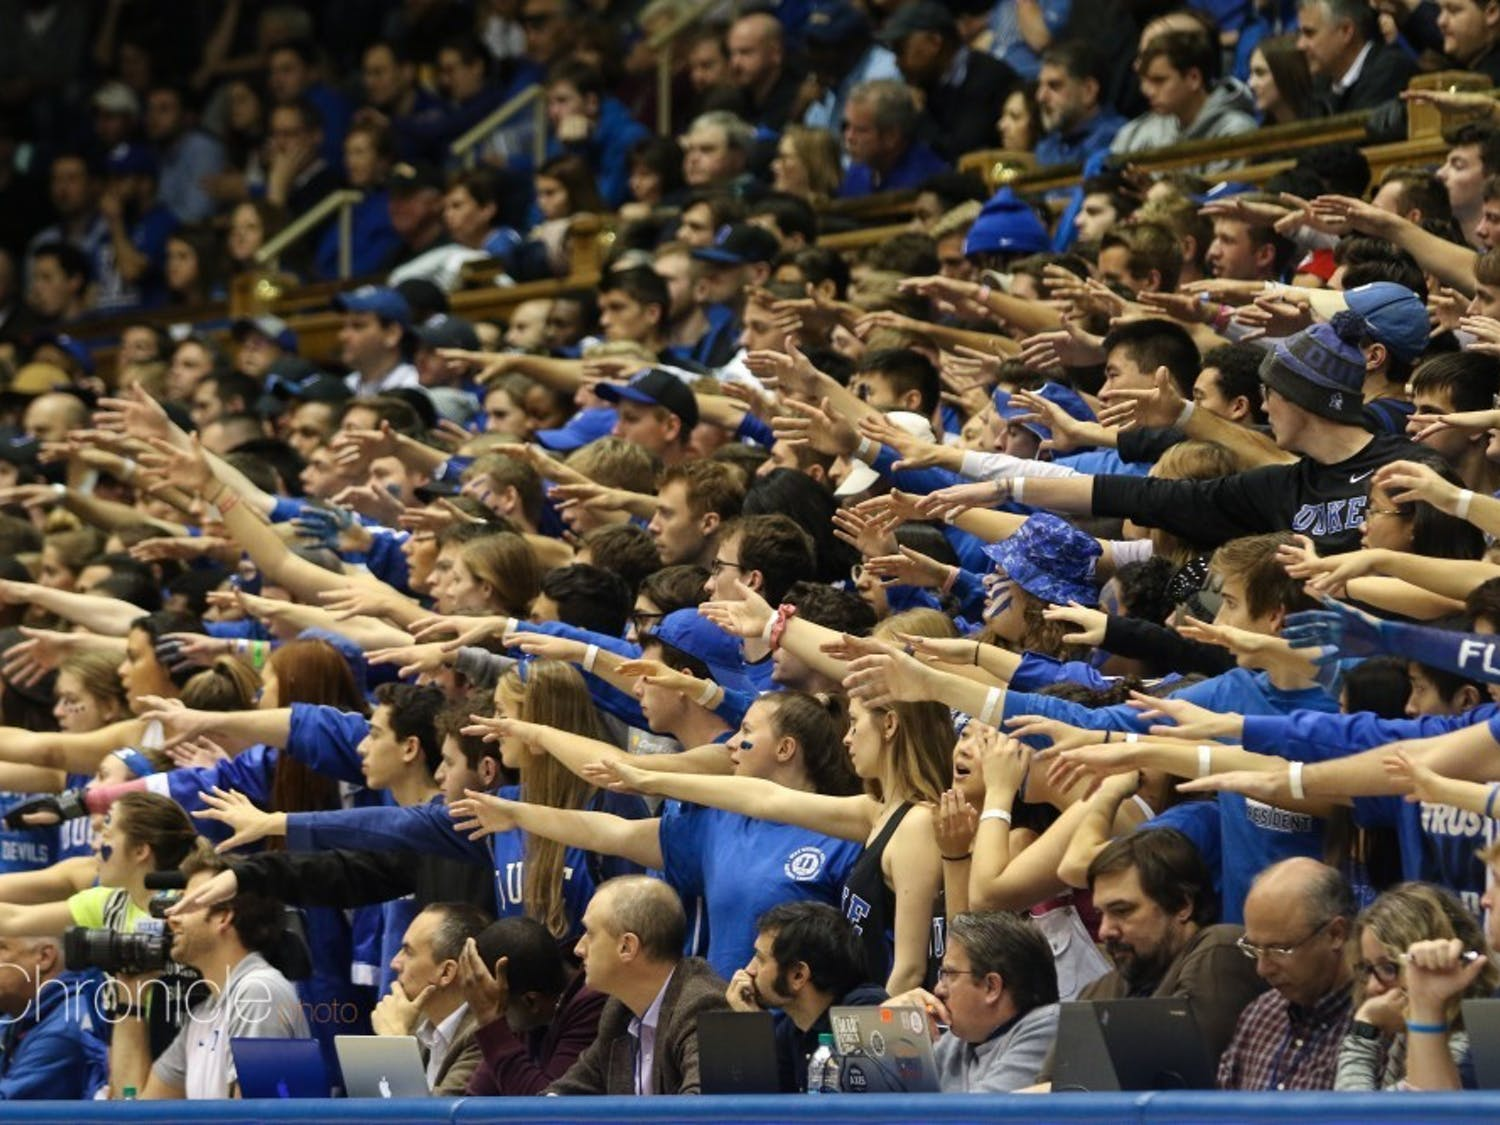 Game days at Cameron Indoor Stadium will look a lot different to begin the season.